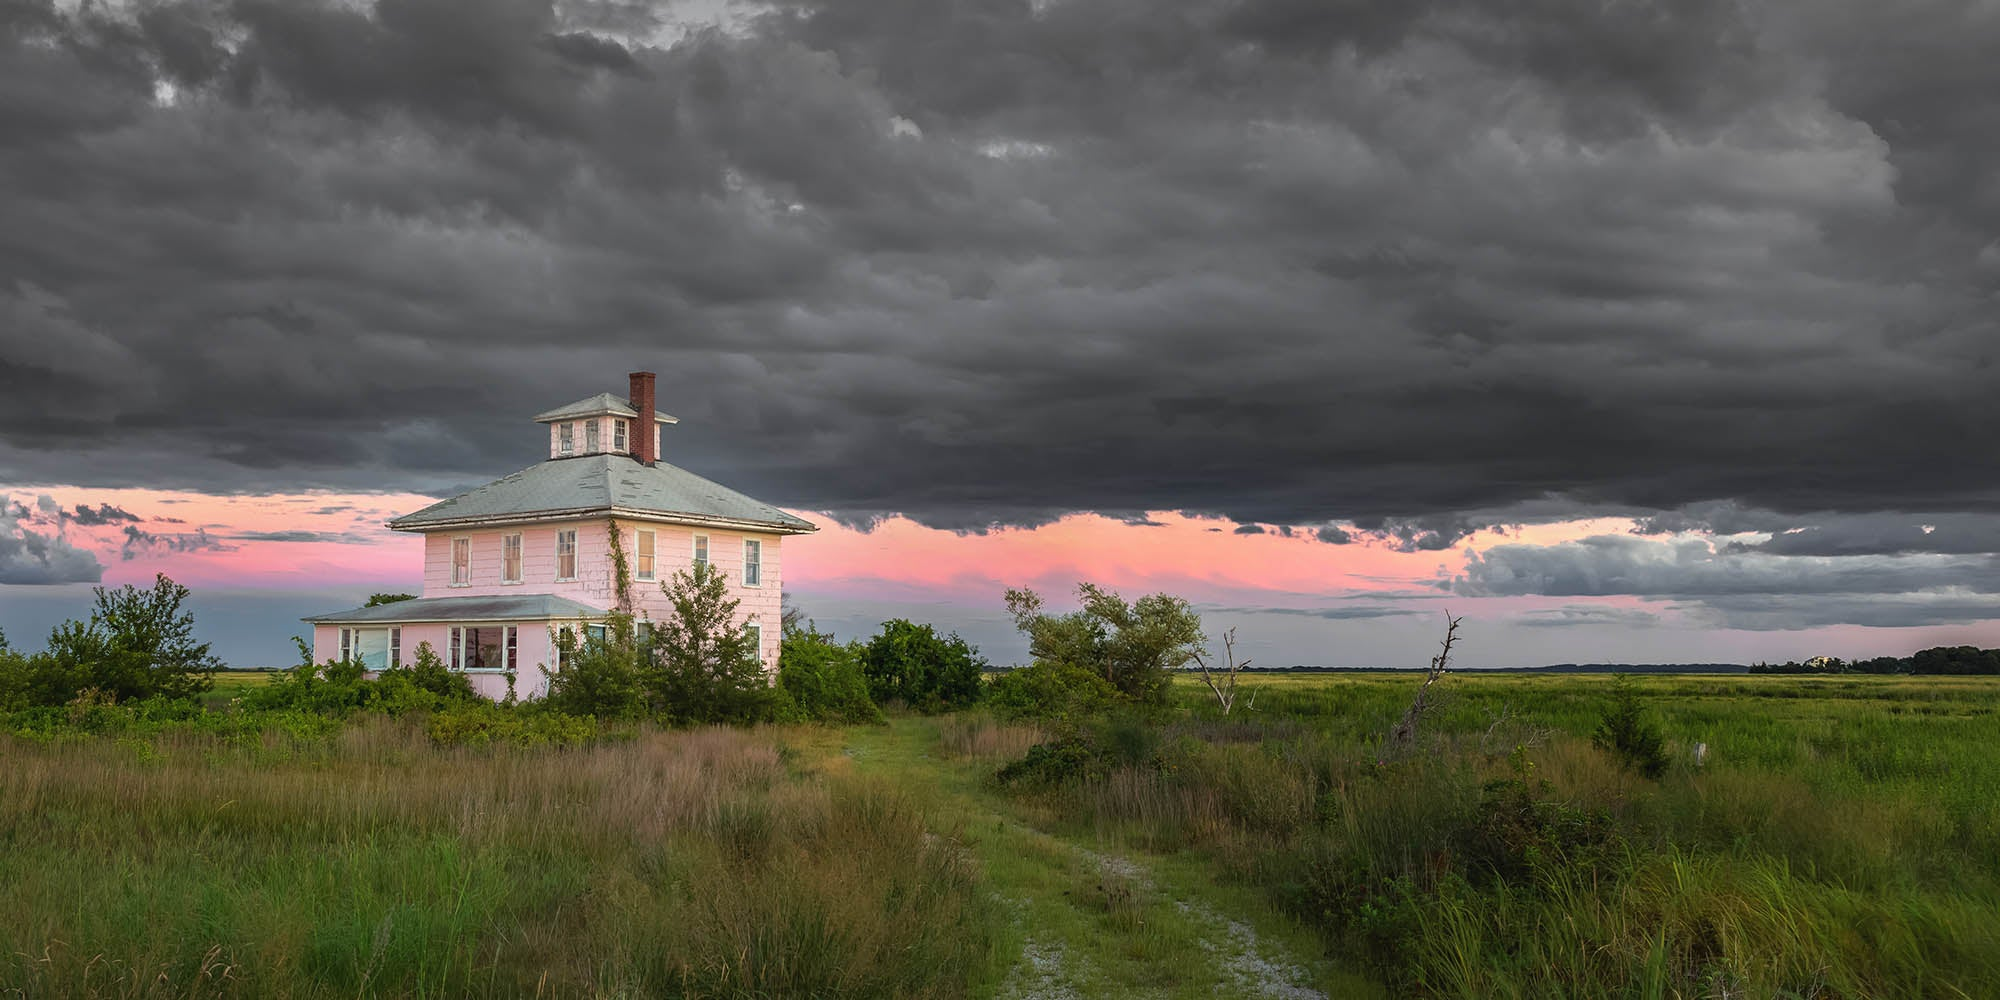 The Plum Island pink house during a storm - Newbury, Massachusetts